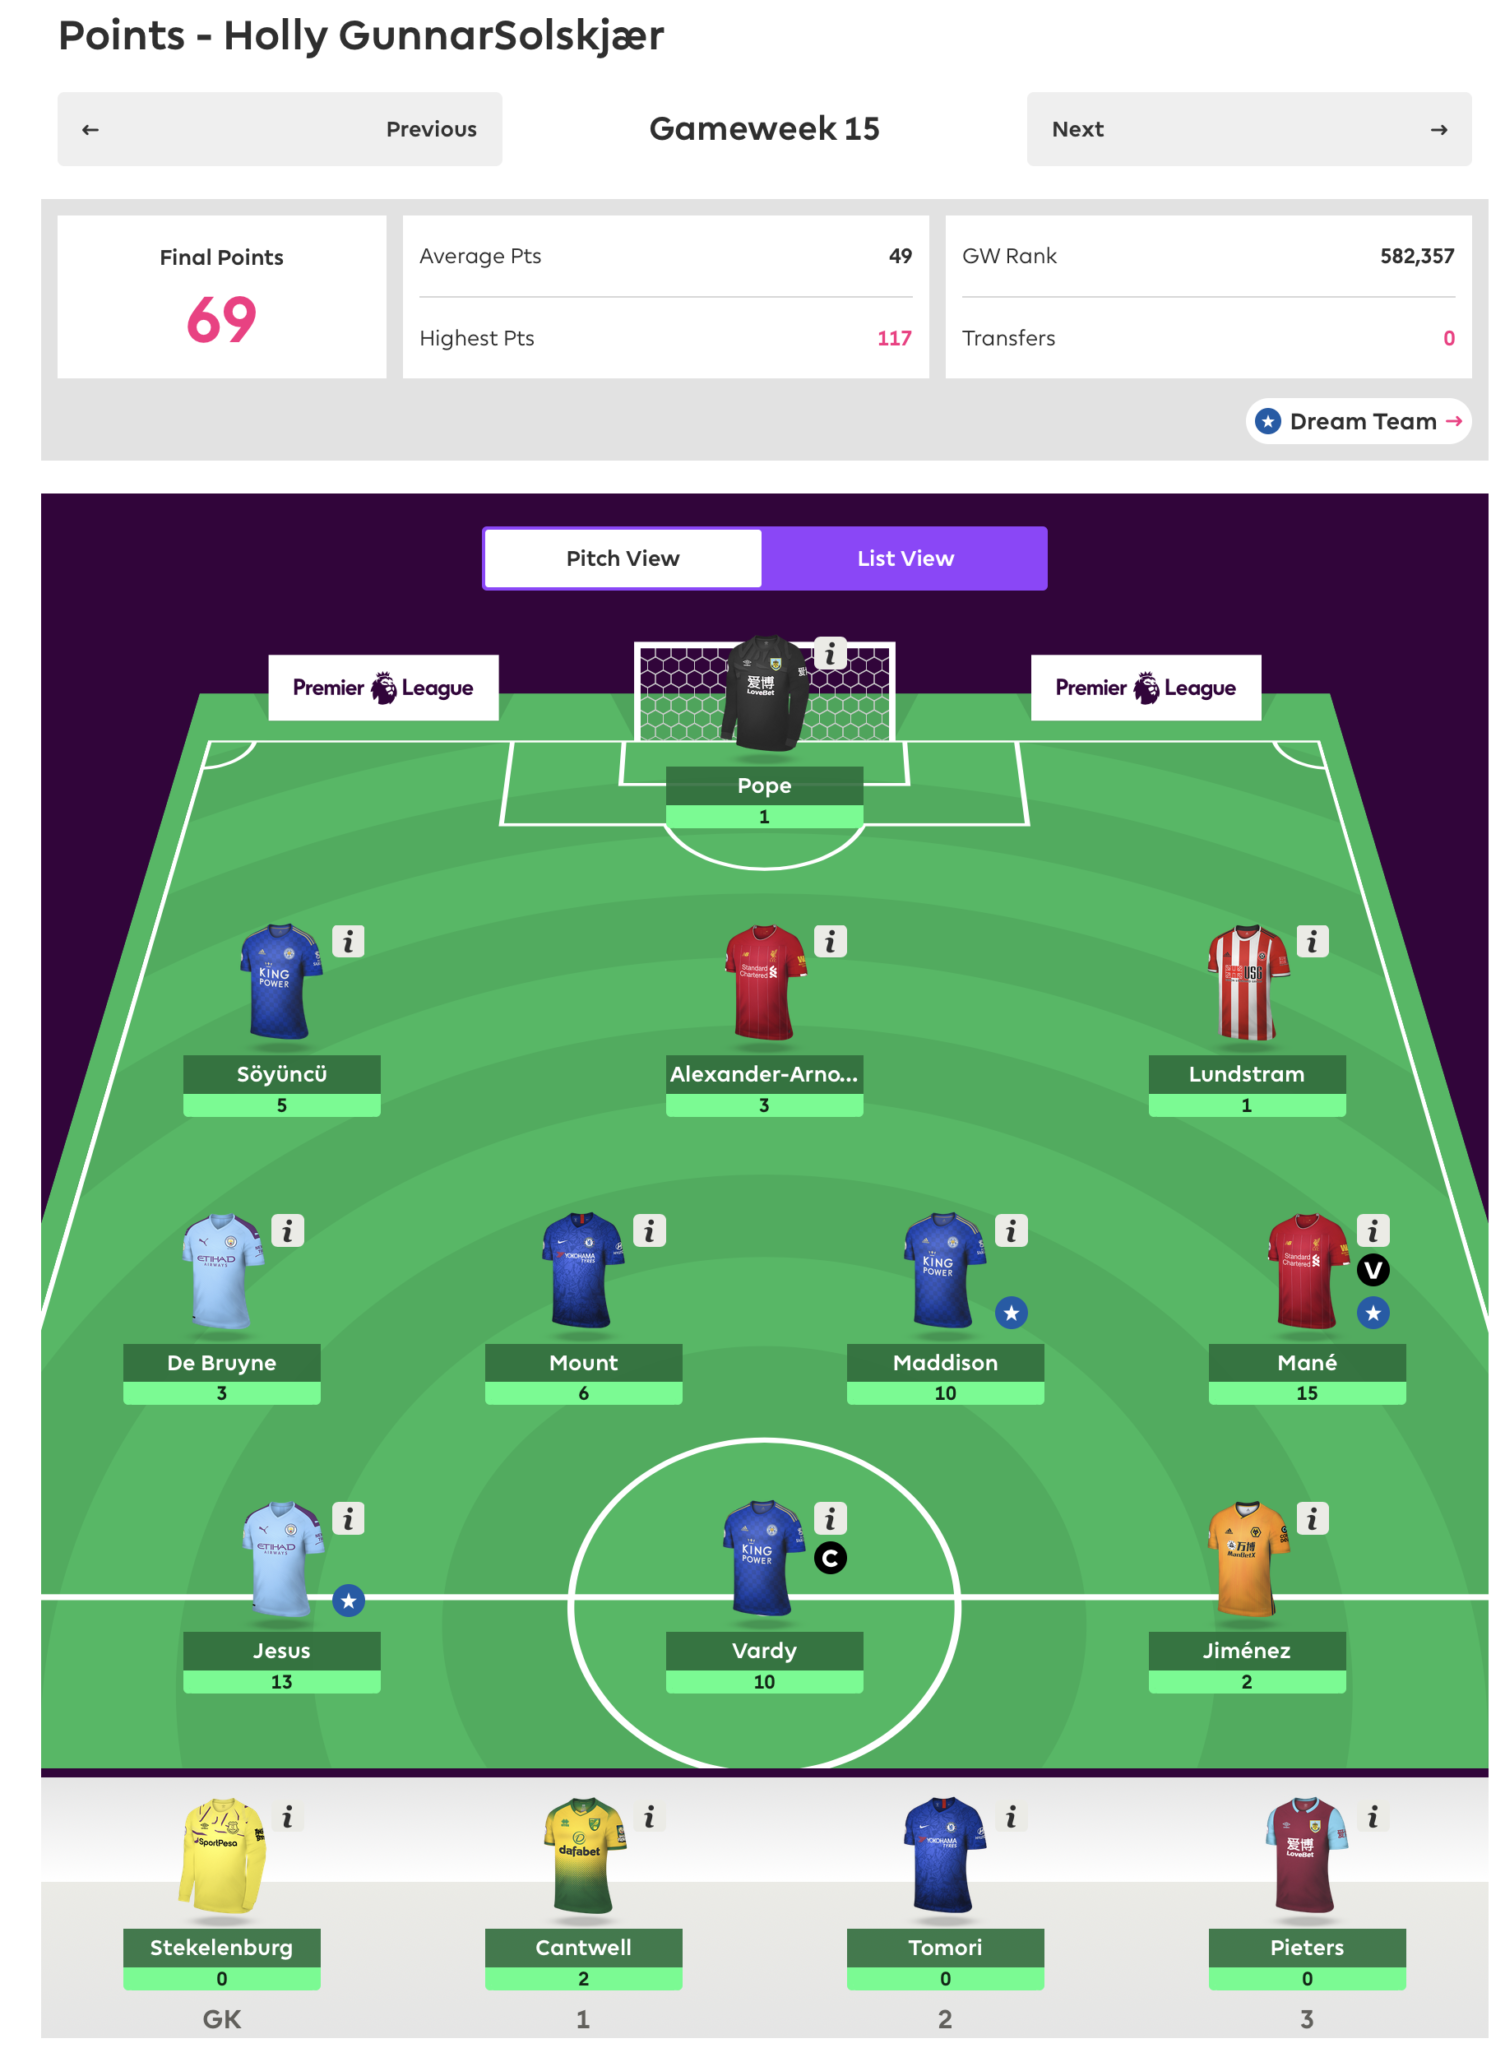 Gameweek 15 Review